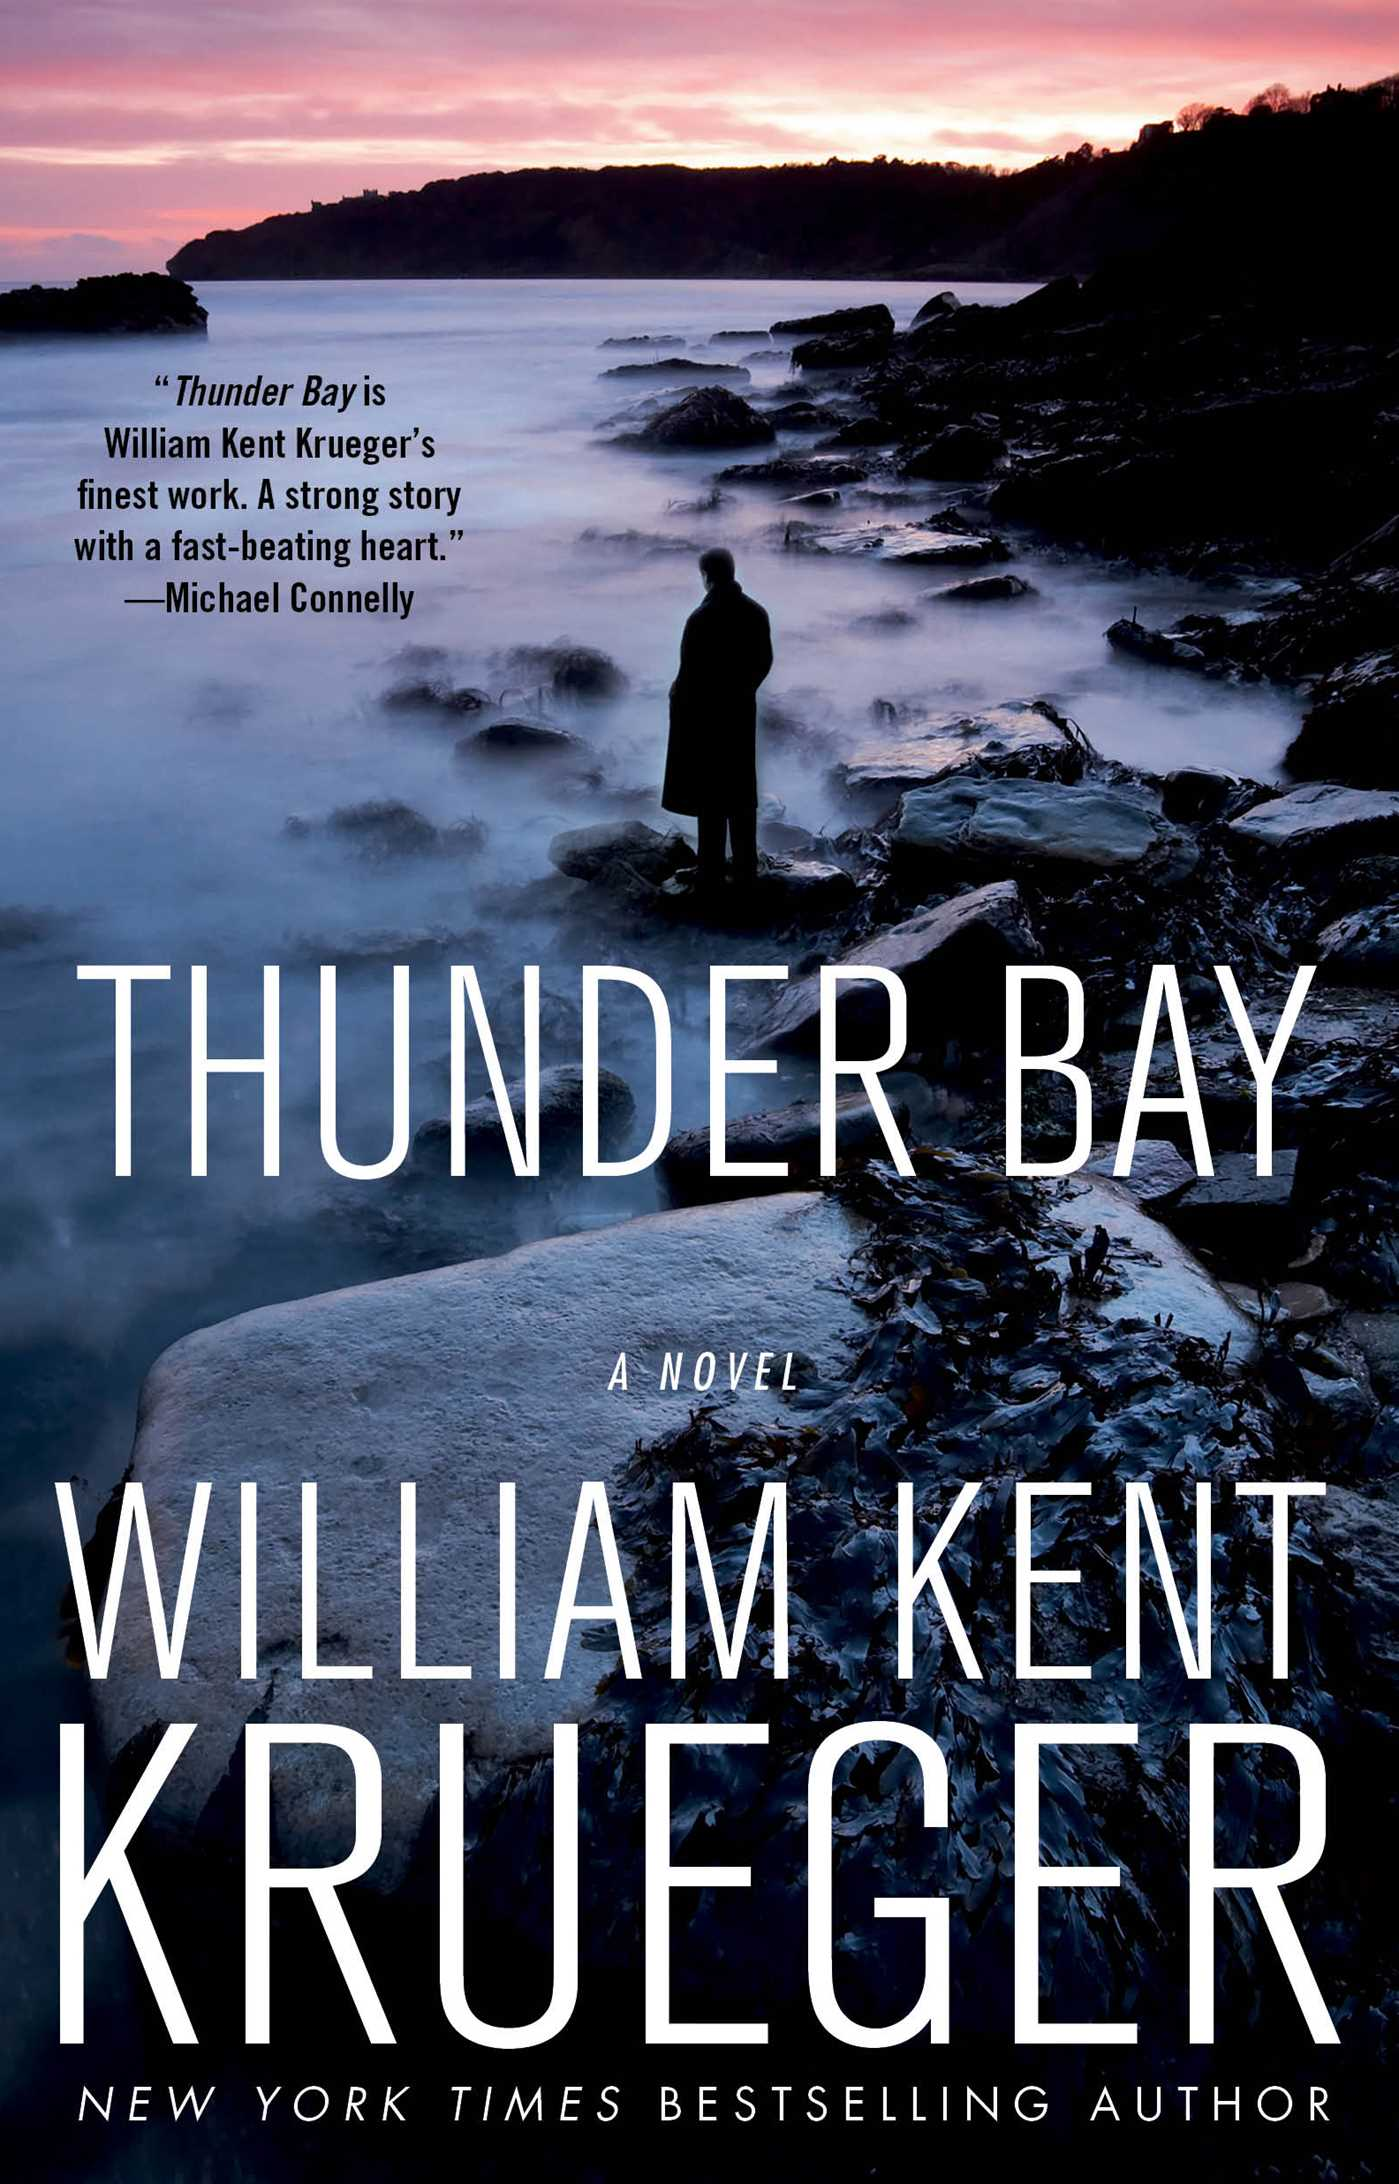 Thunder-bay-9781416546498_hr